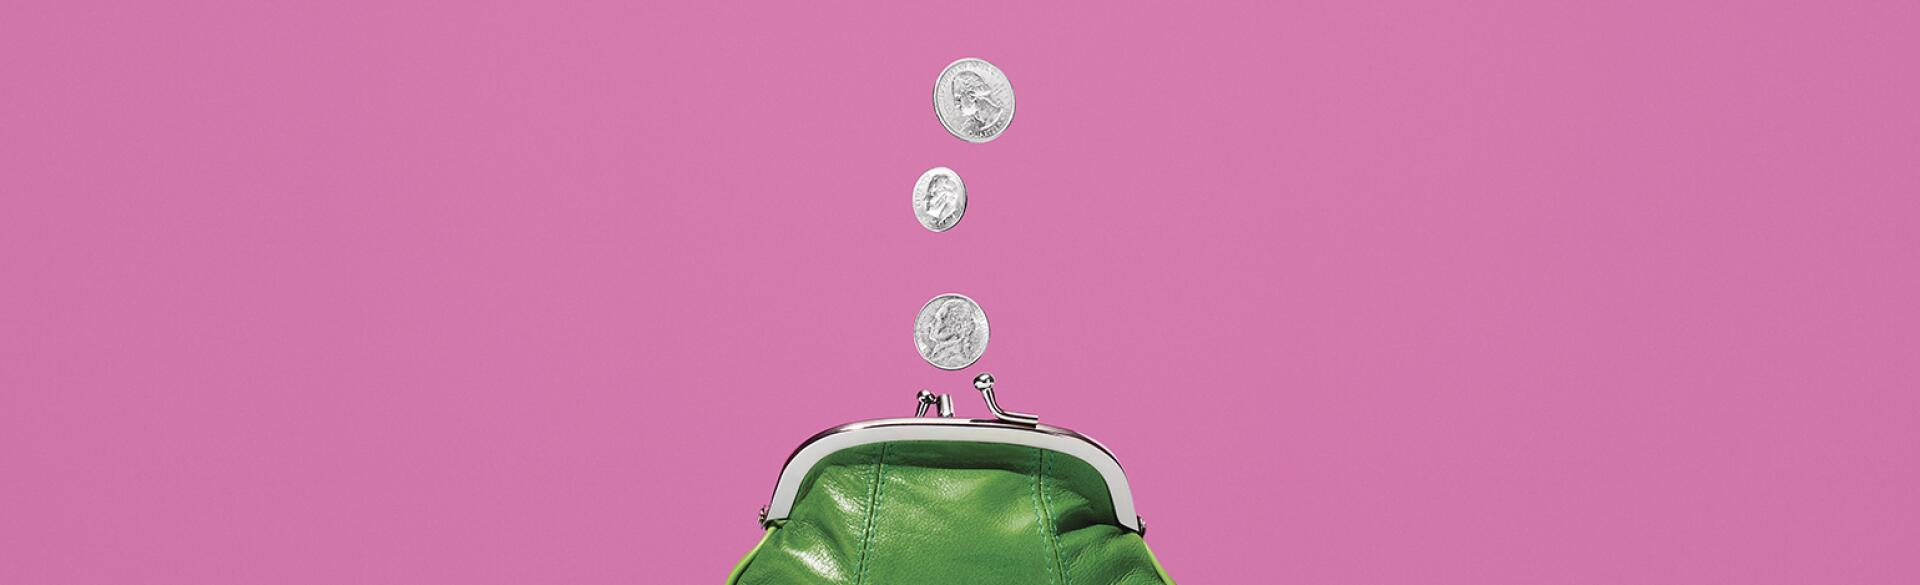 gif of small green coin purse with coins coming out